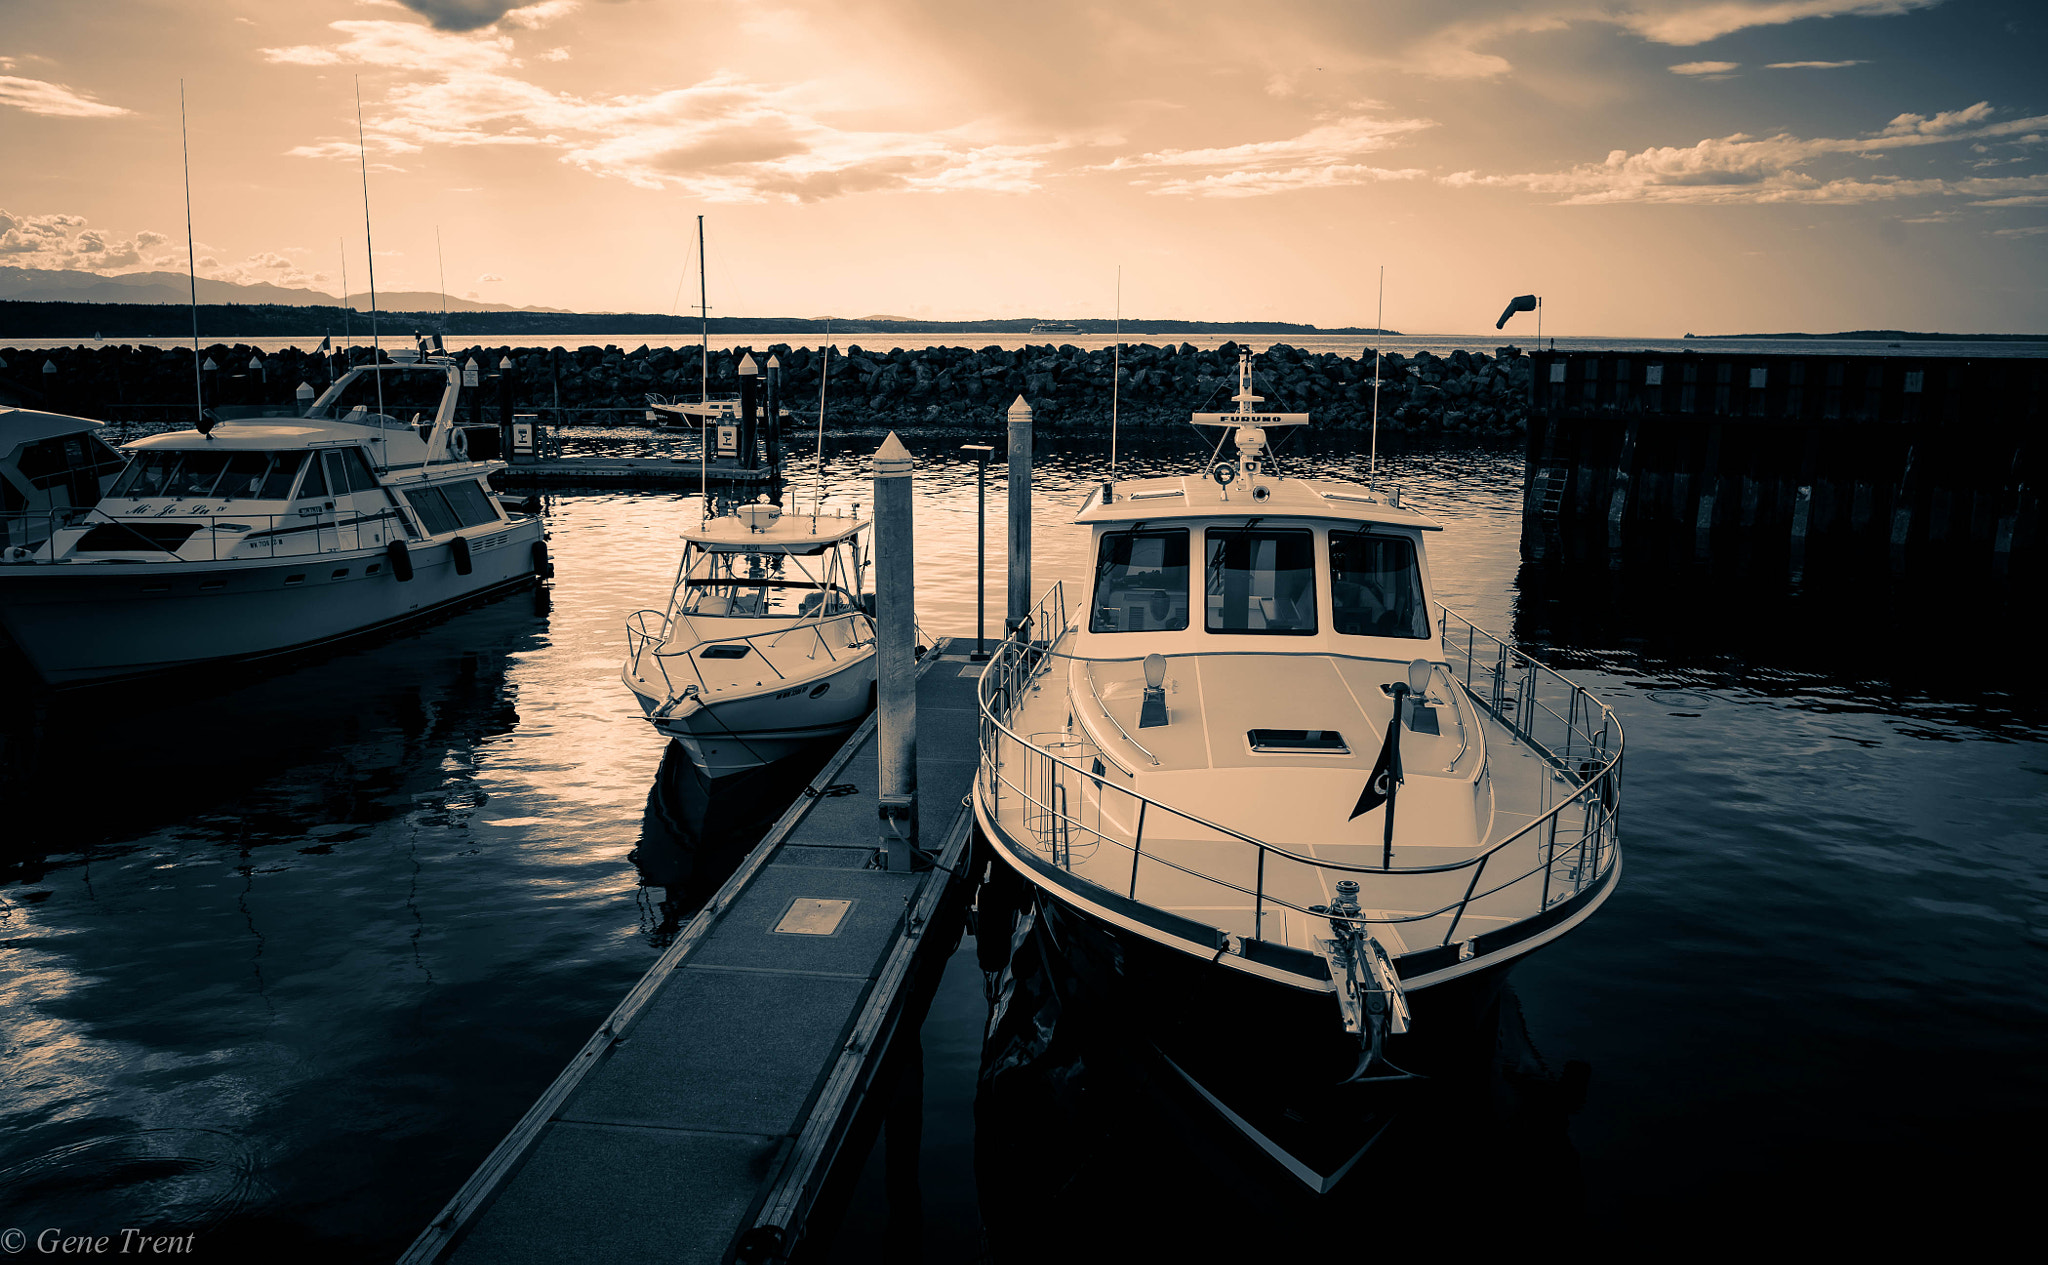 Photograph Evening dock by Gene Trent on 500px